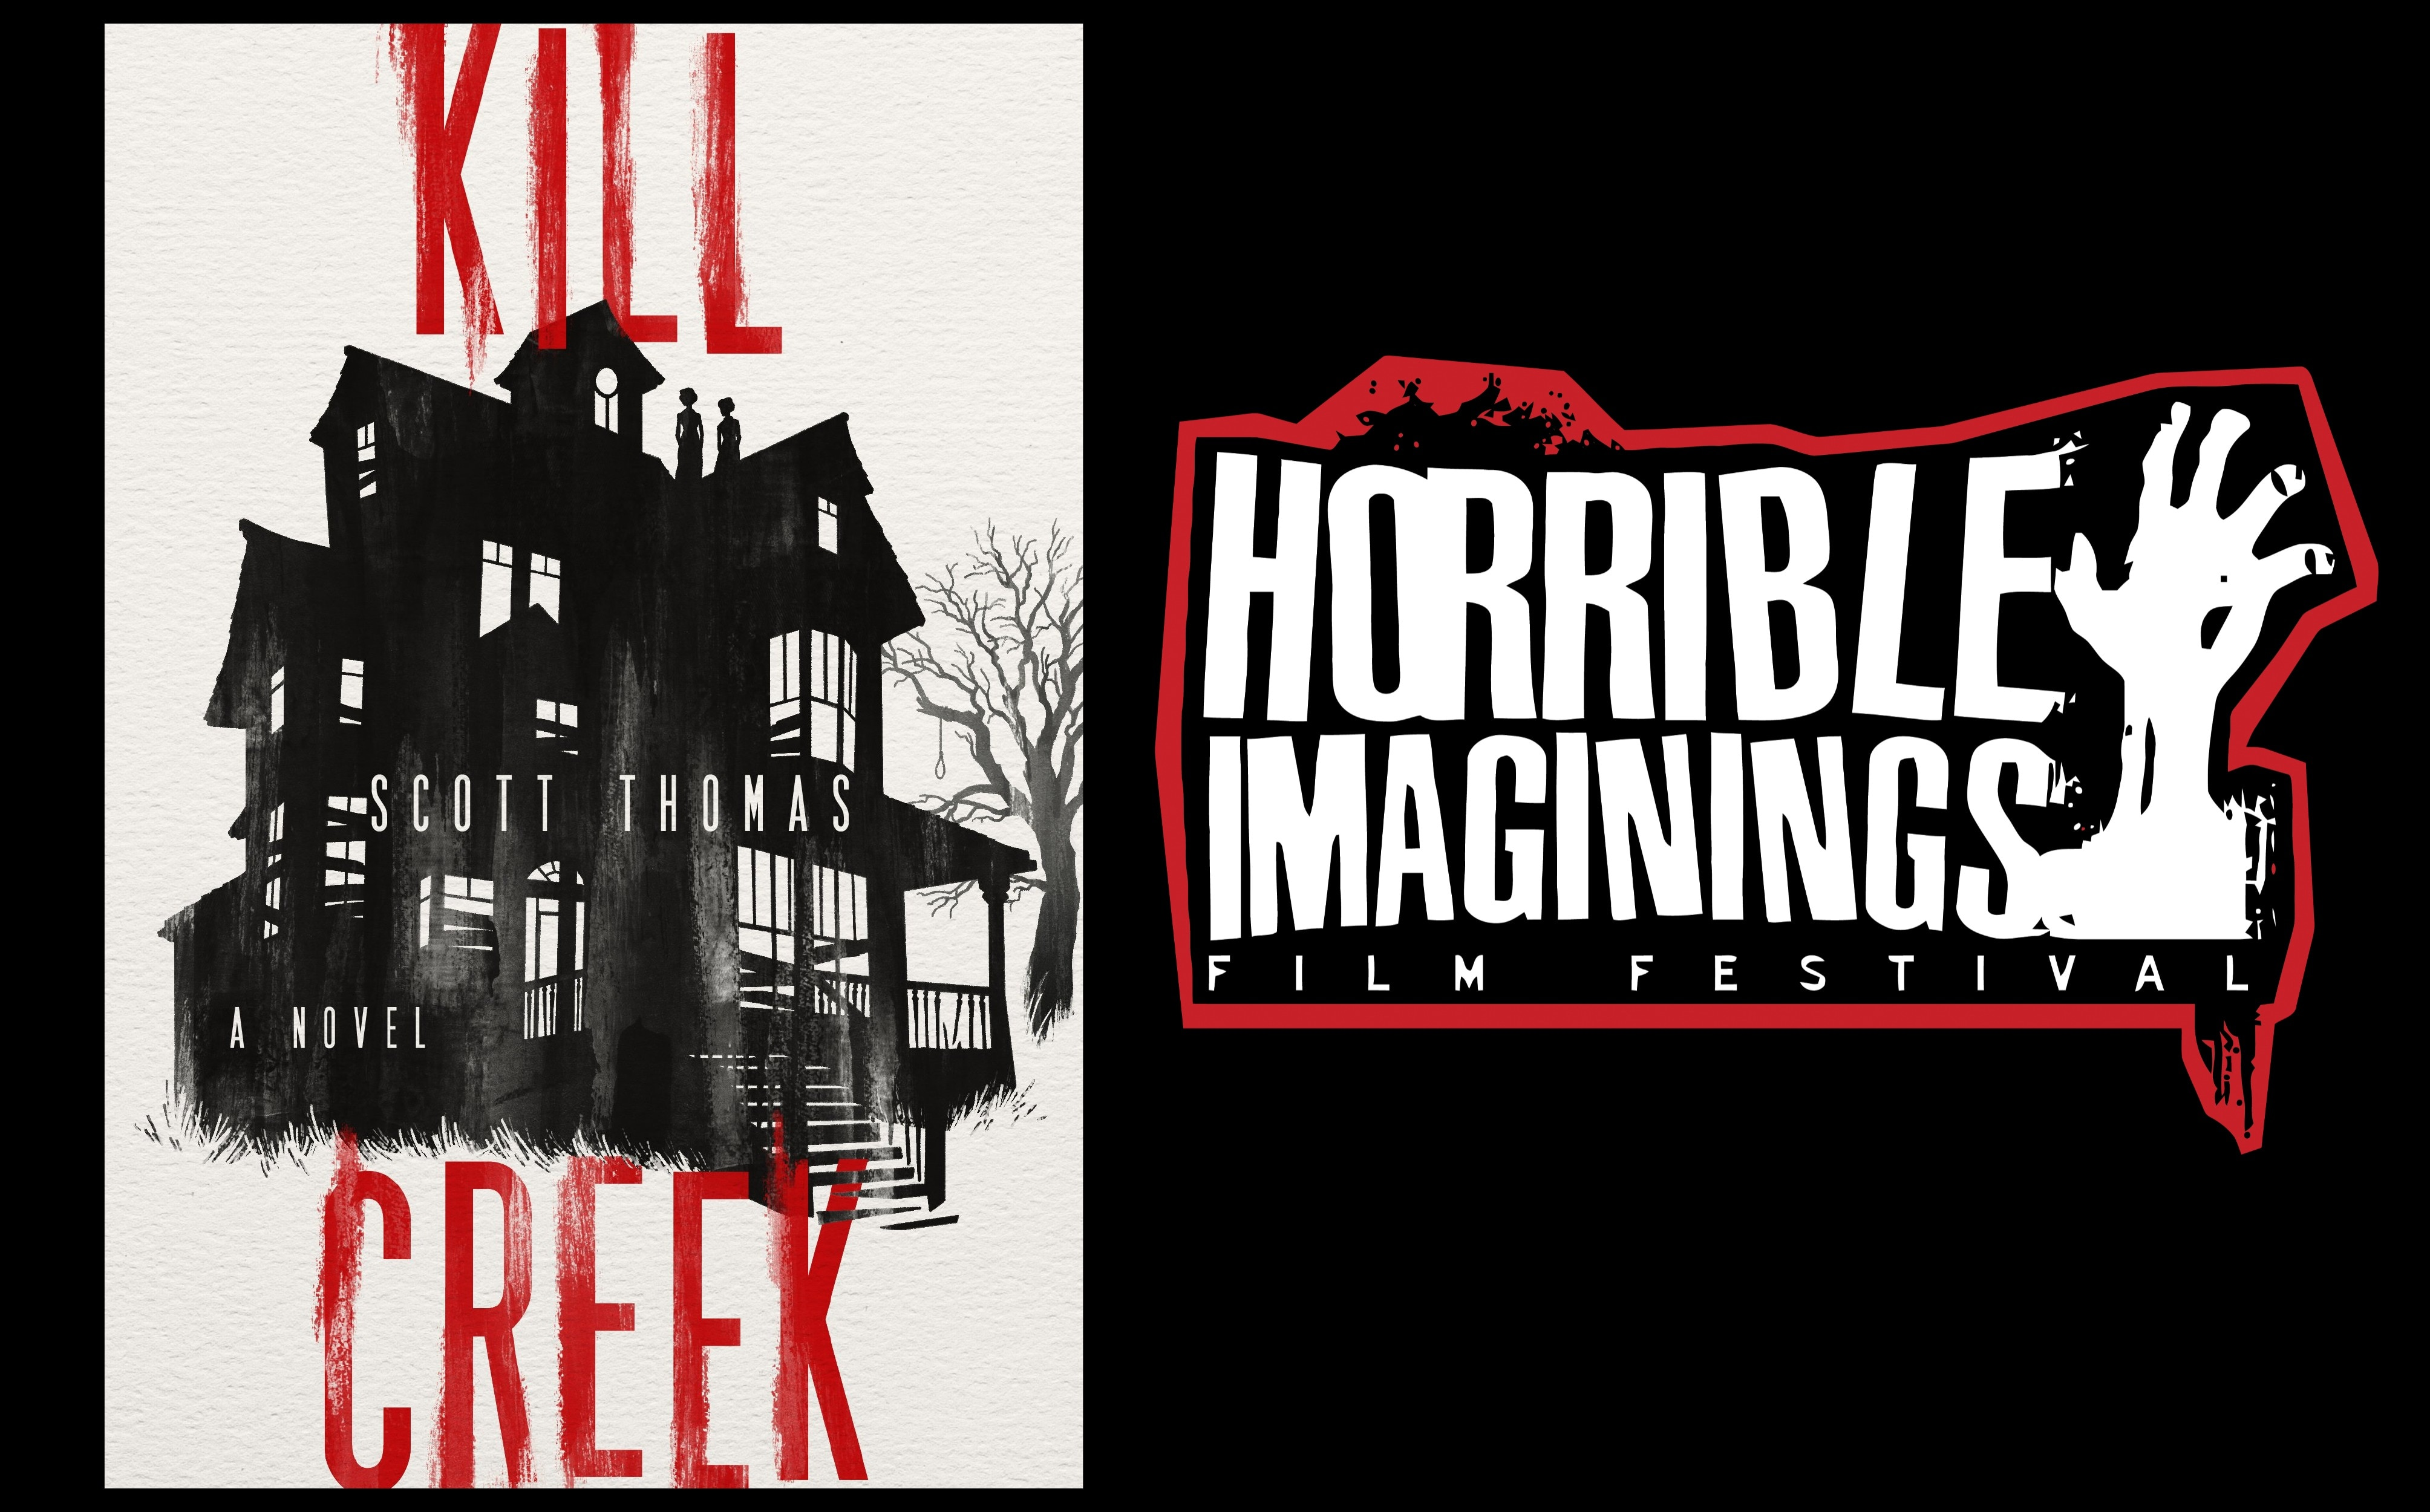 kill creek podcast - Horrible Imaginings Podcast #178: Start Halloween Season Right with Kill Creek Author Scott Thomas!